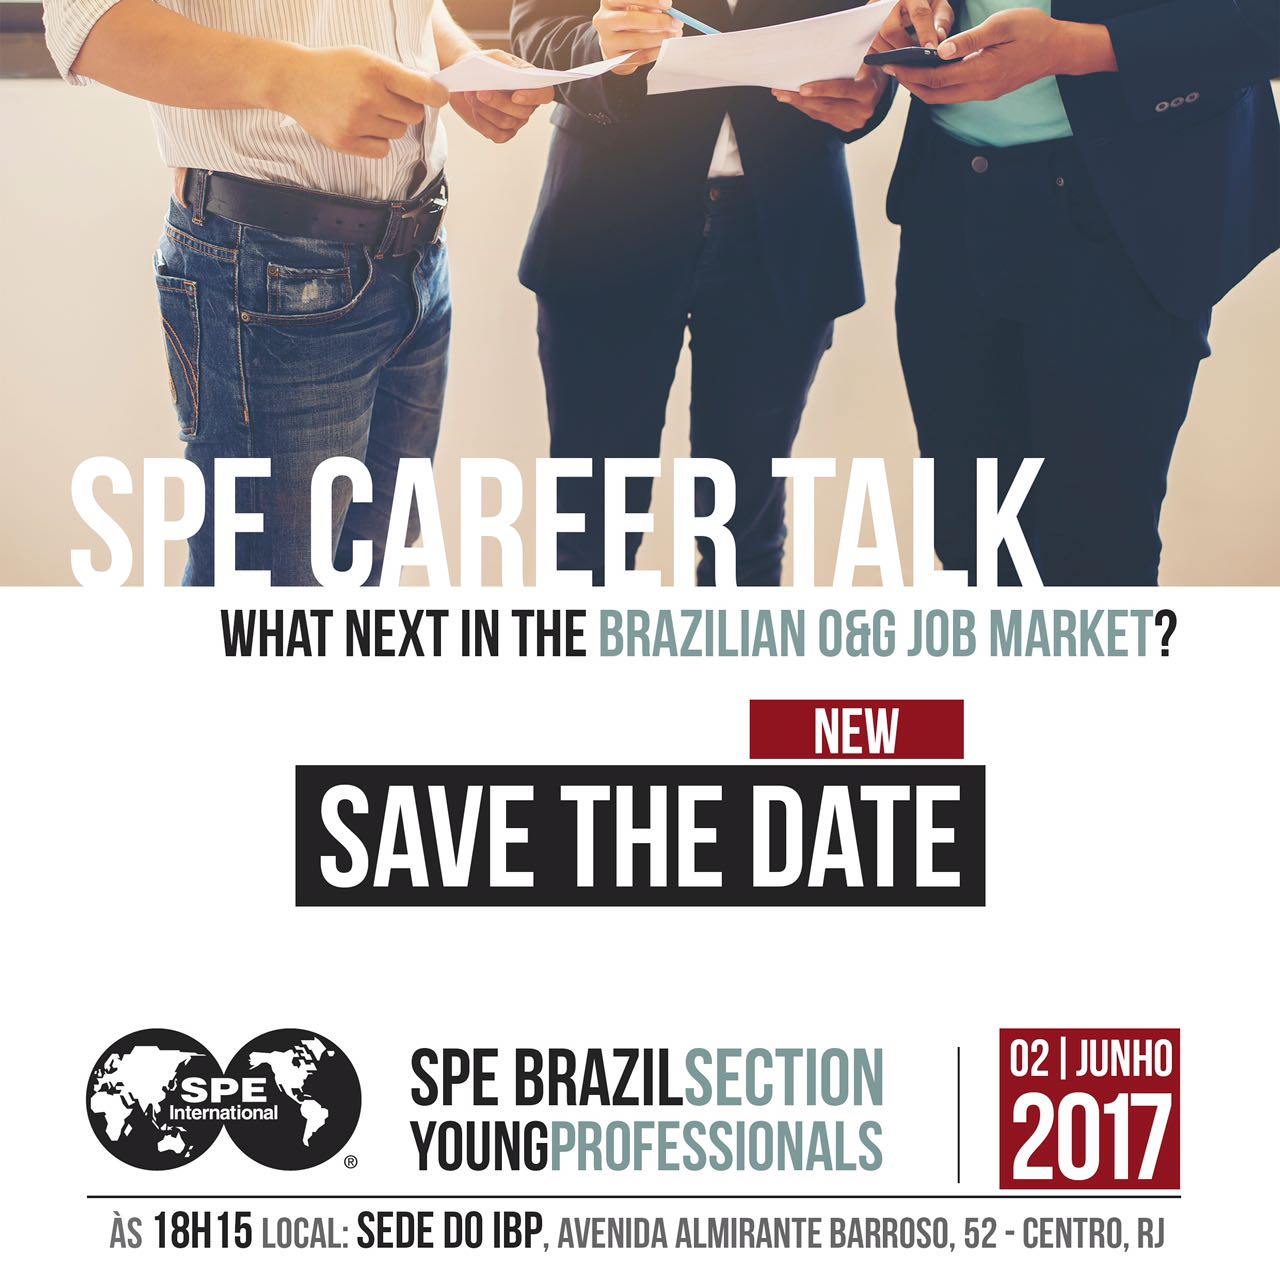 SPE Career Talk – What's next in O&G Job Market?